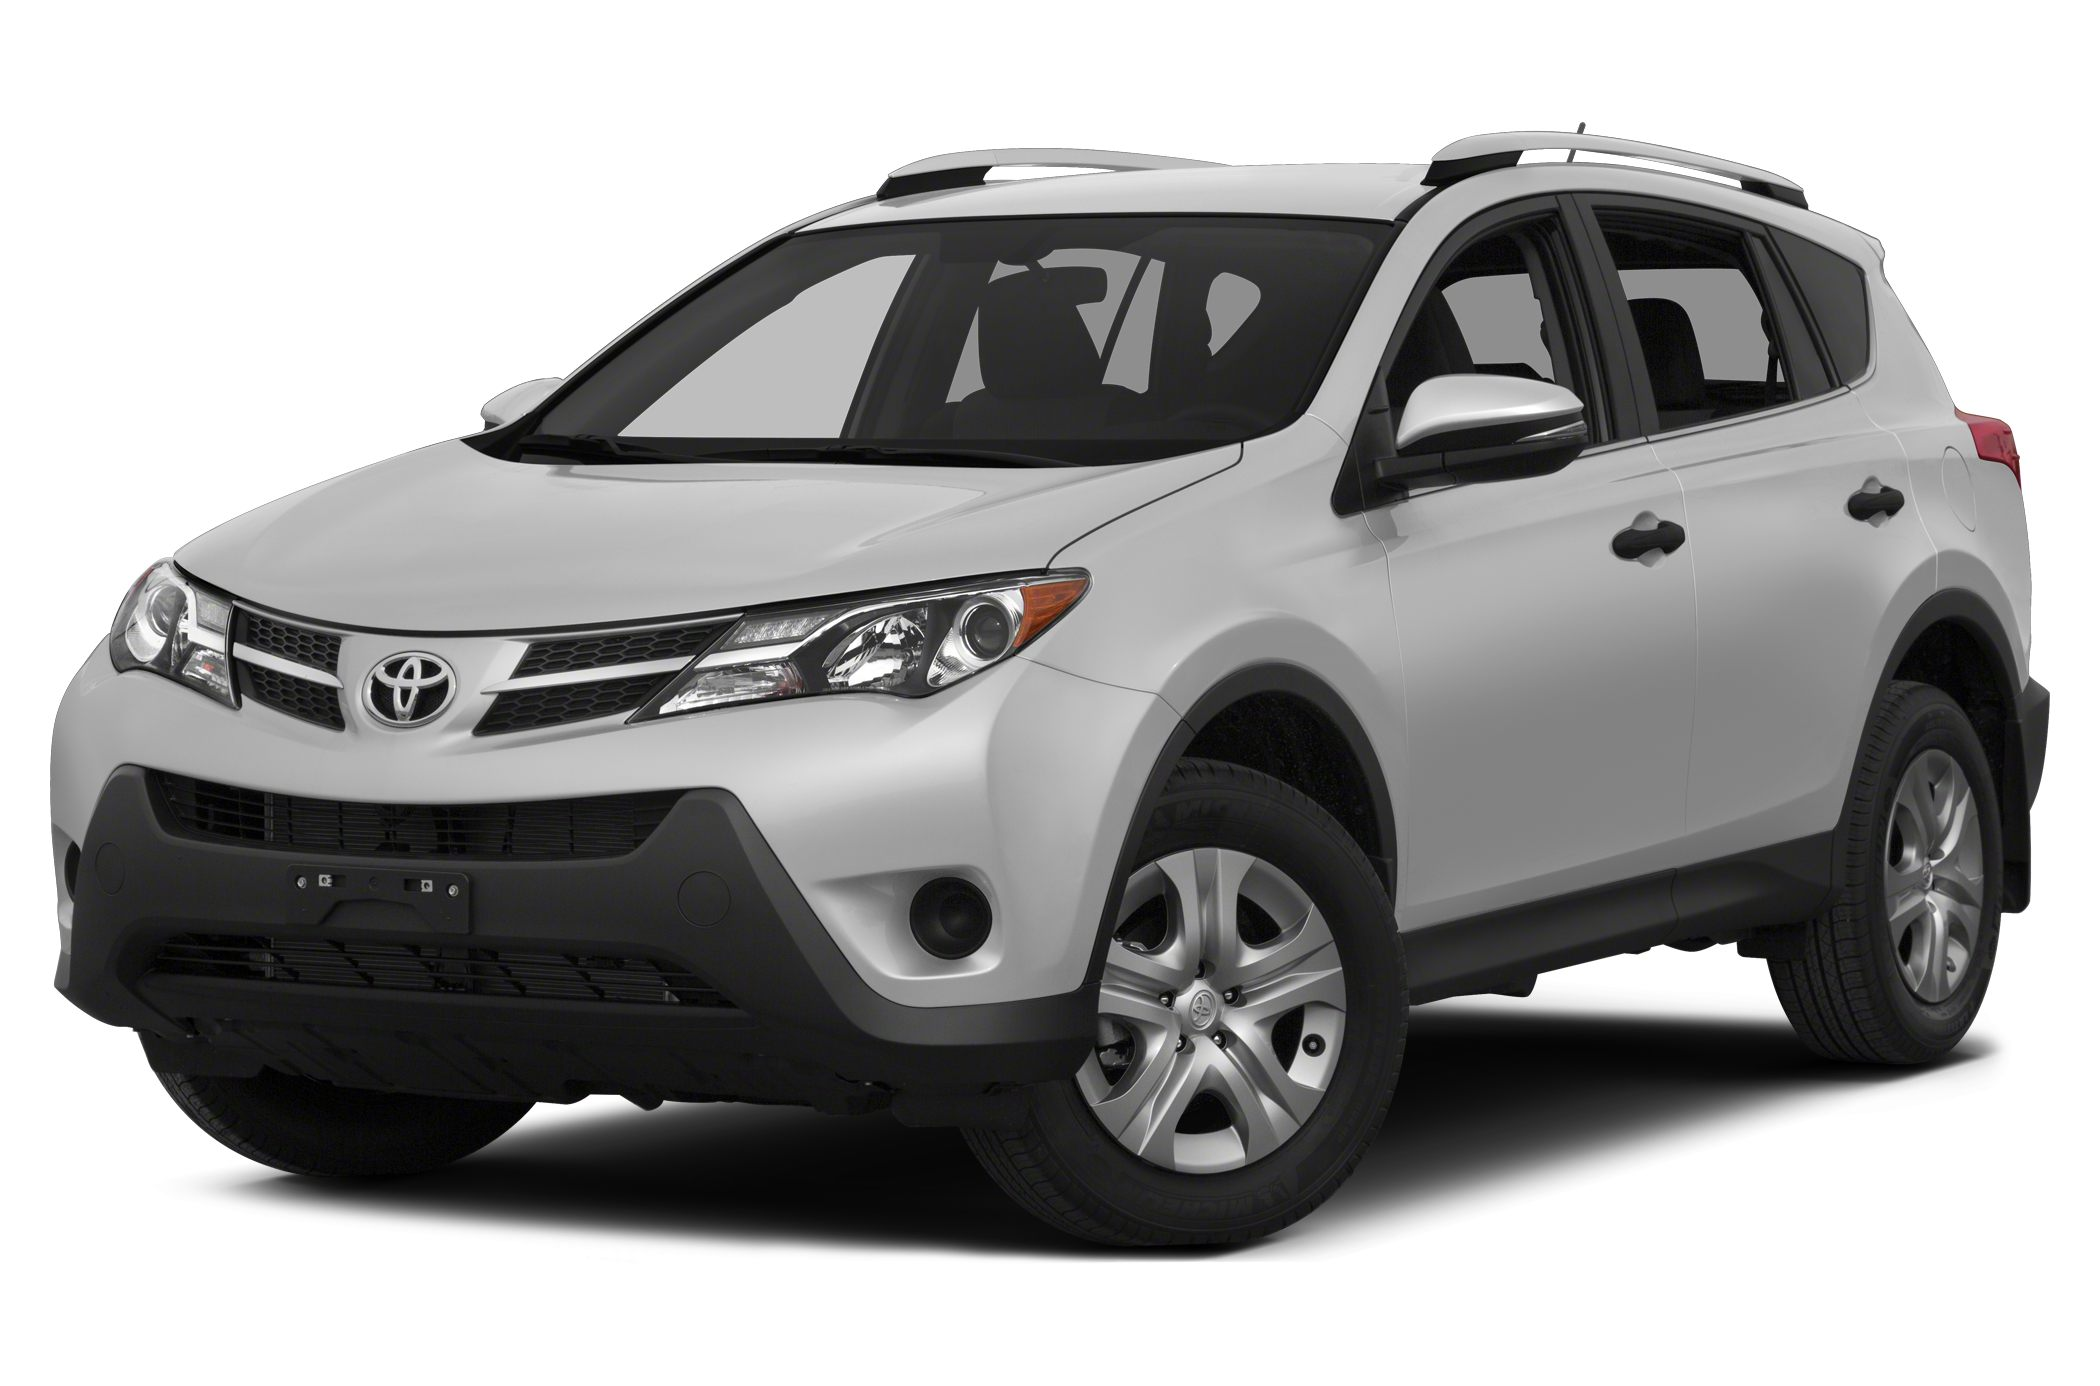 2015 Toyota RAV4 Limited SUV for sale in Binghamton for $30,960 with 0 miles